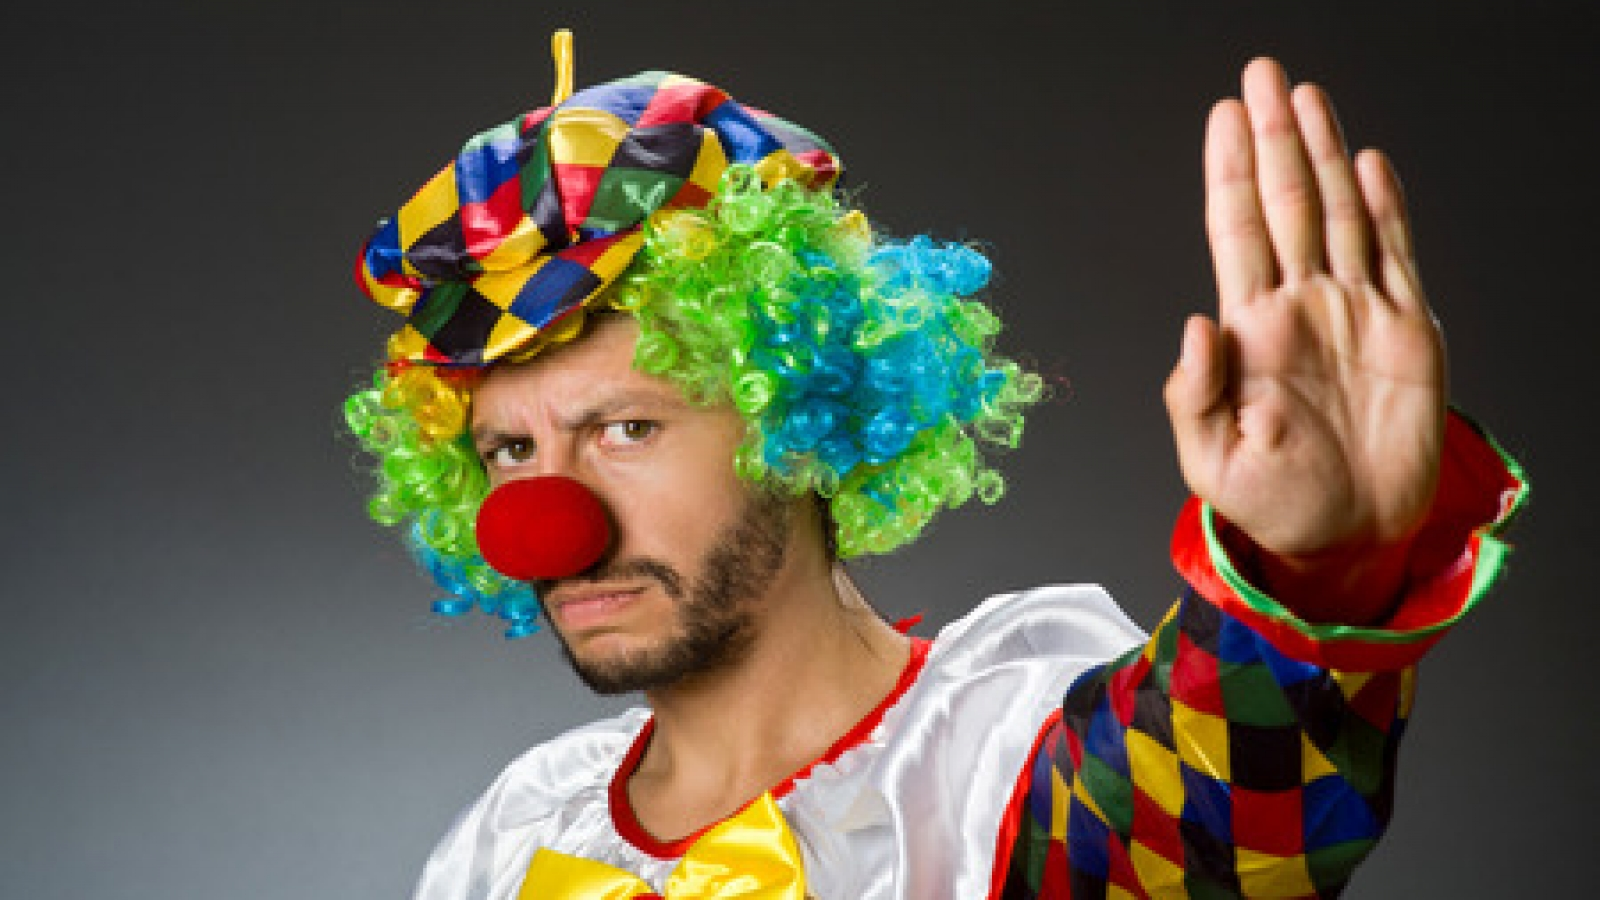 36688846 - funny clown in colourful costume